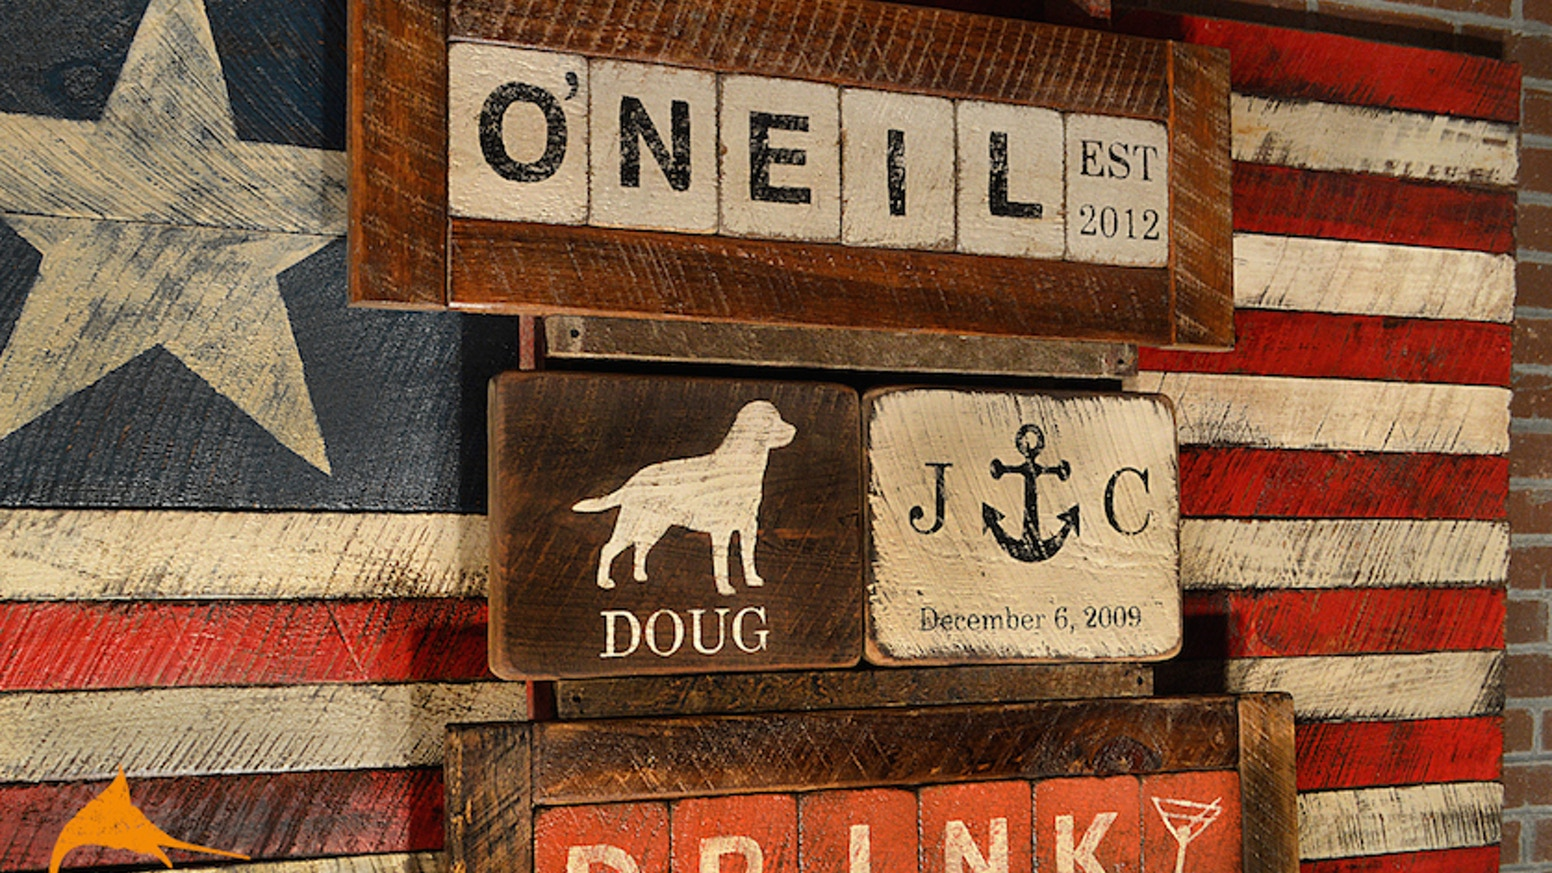 Rustic Marlin Handcrafted Custom Wooden Signs Designs By Brian